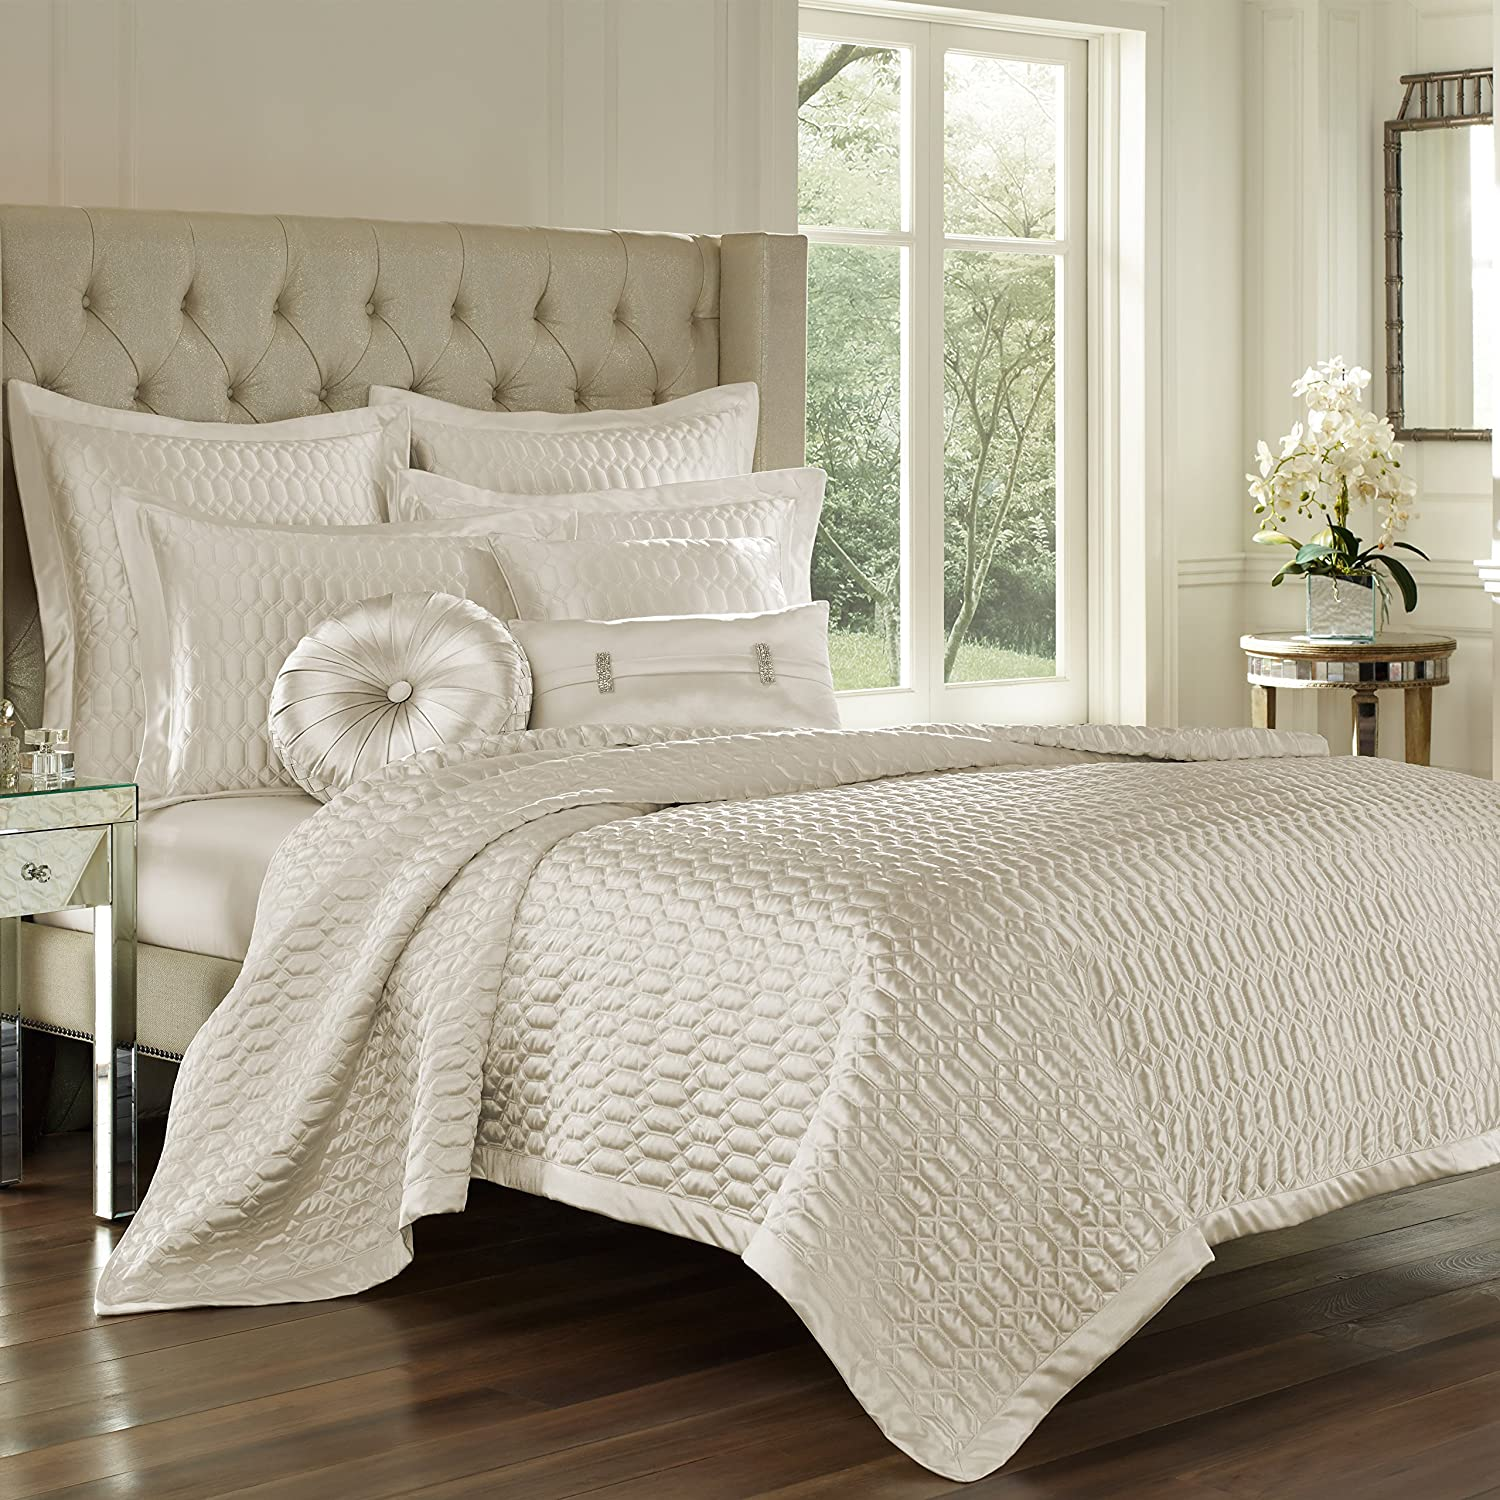 Five Queens Court Saranda Satin Geometric Quilted Coverlet Full Queen, Natural